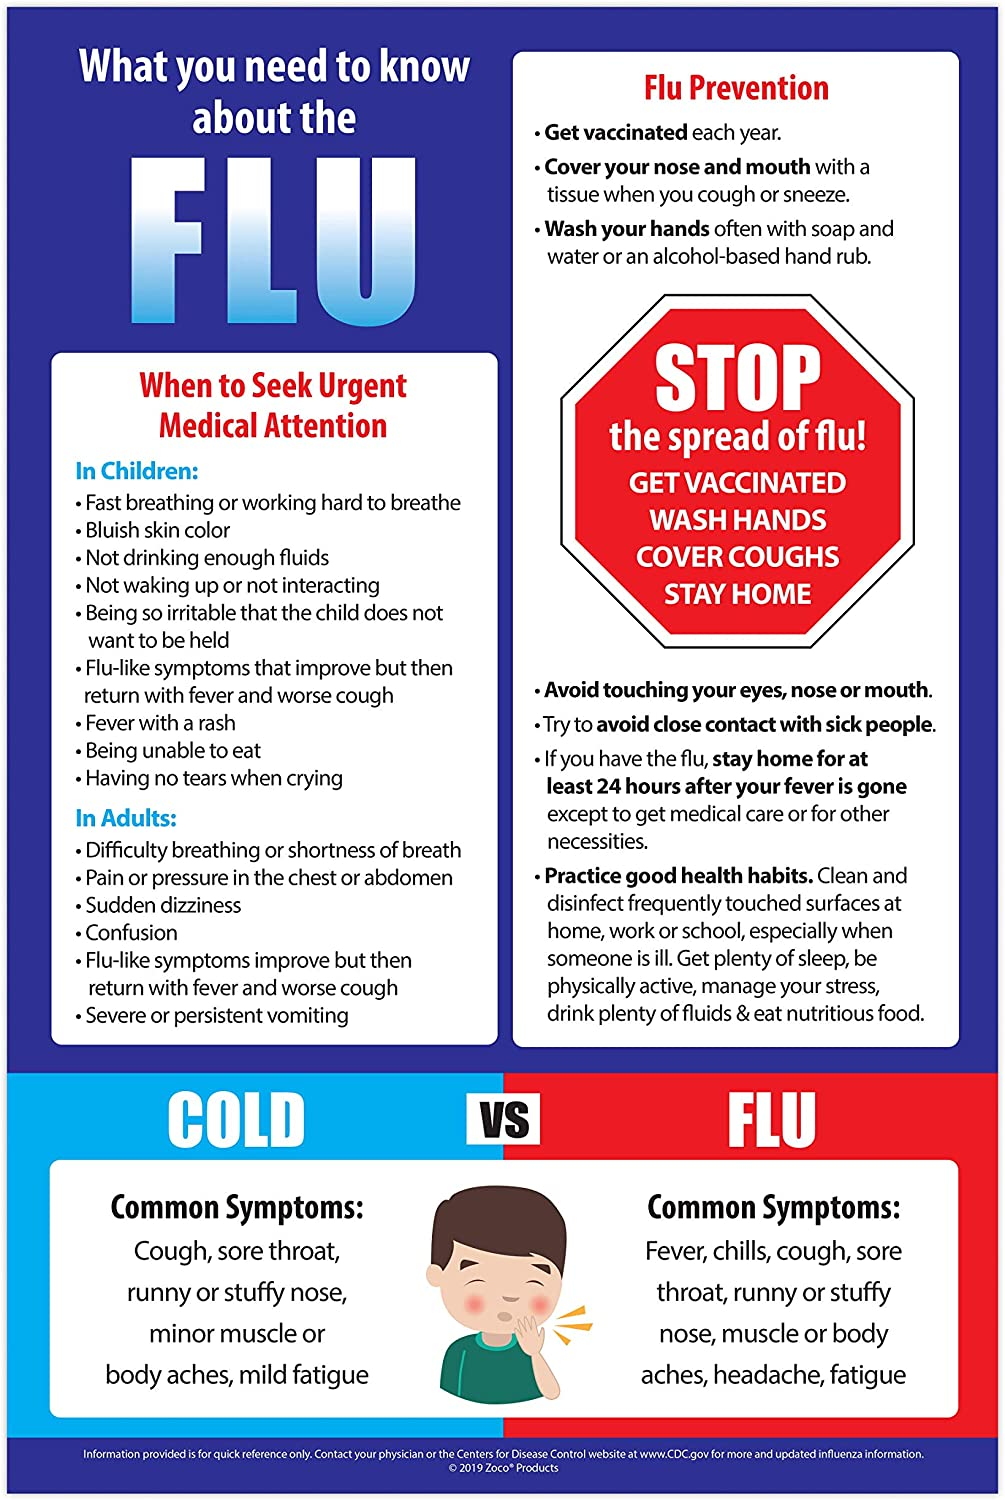 Flu Poster - What You Need to Know About The Flu Poster - Flu vs Cold Poster - Signs of The Flu - Health Posters for School Nurse Office - 12 x 18 inches - Laminated